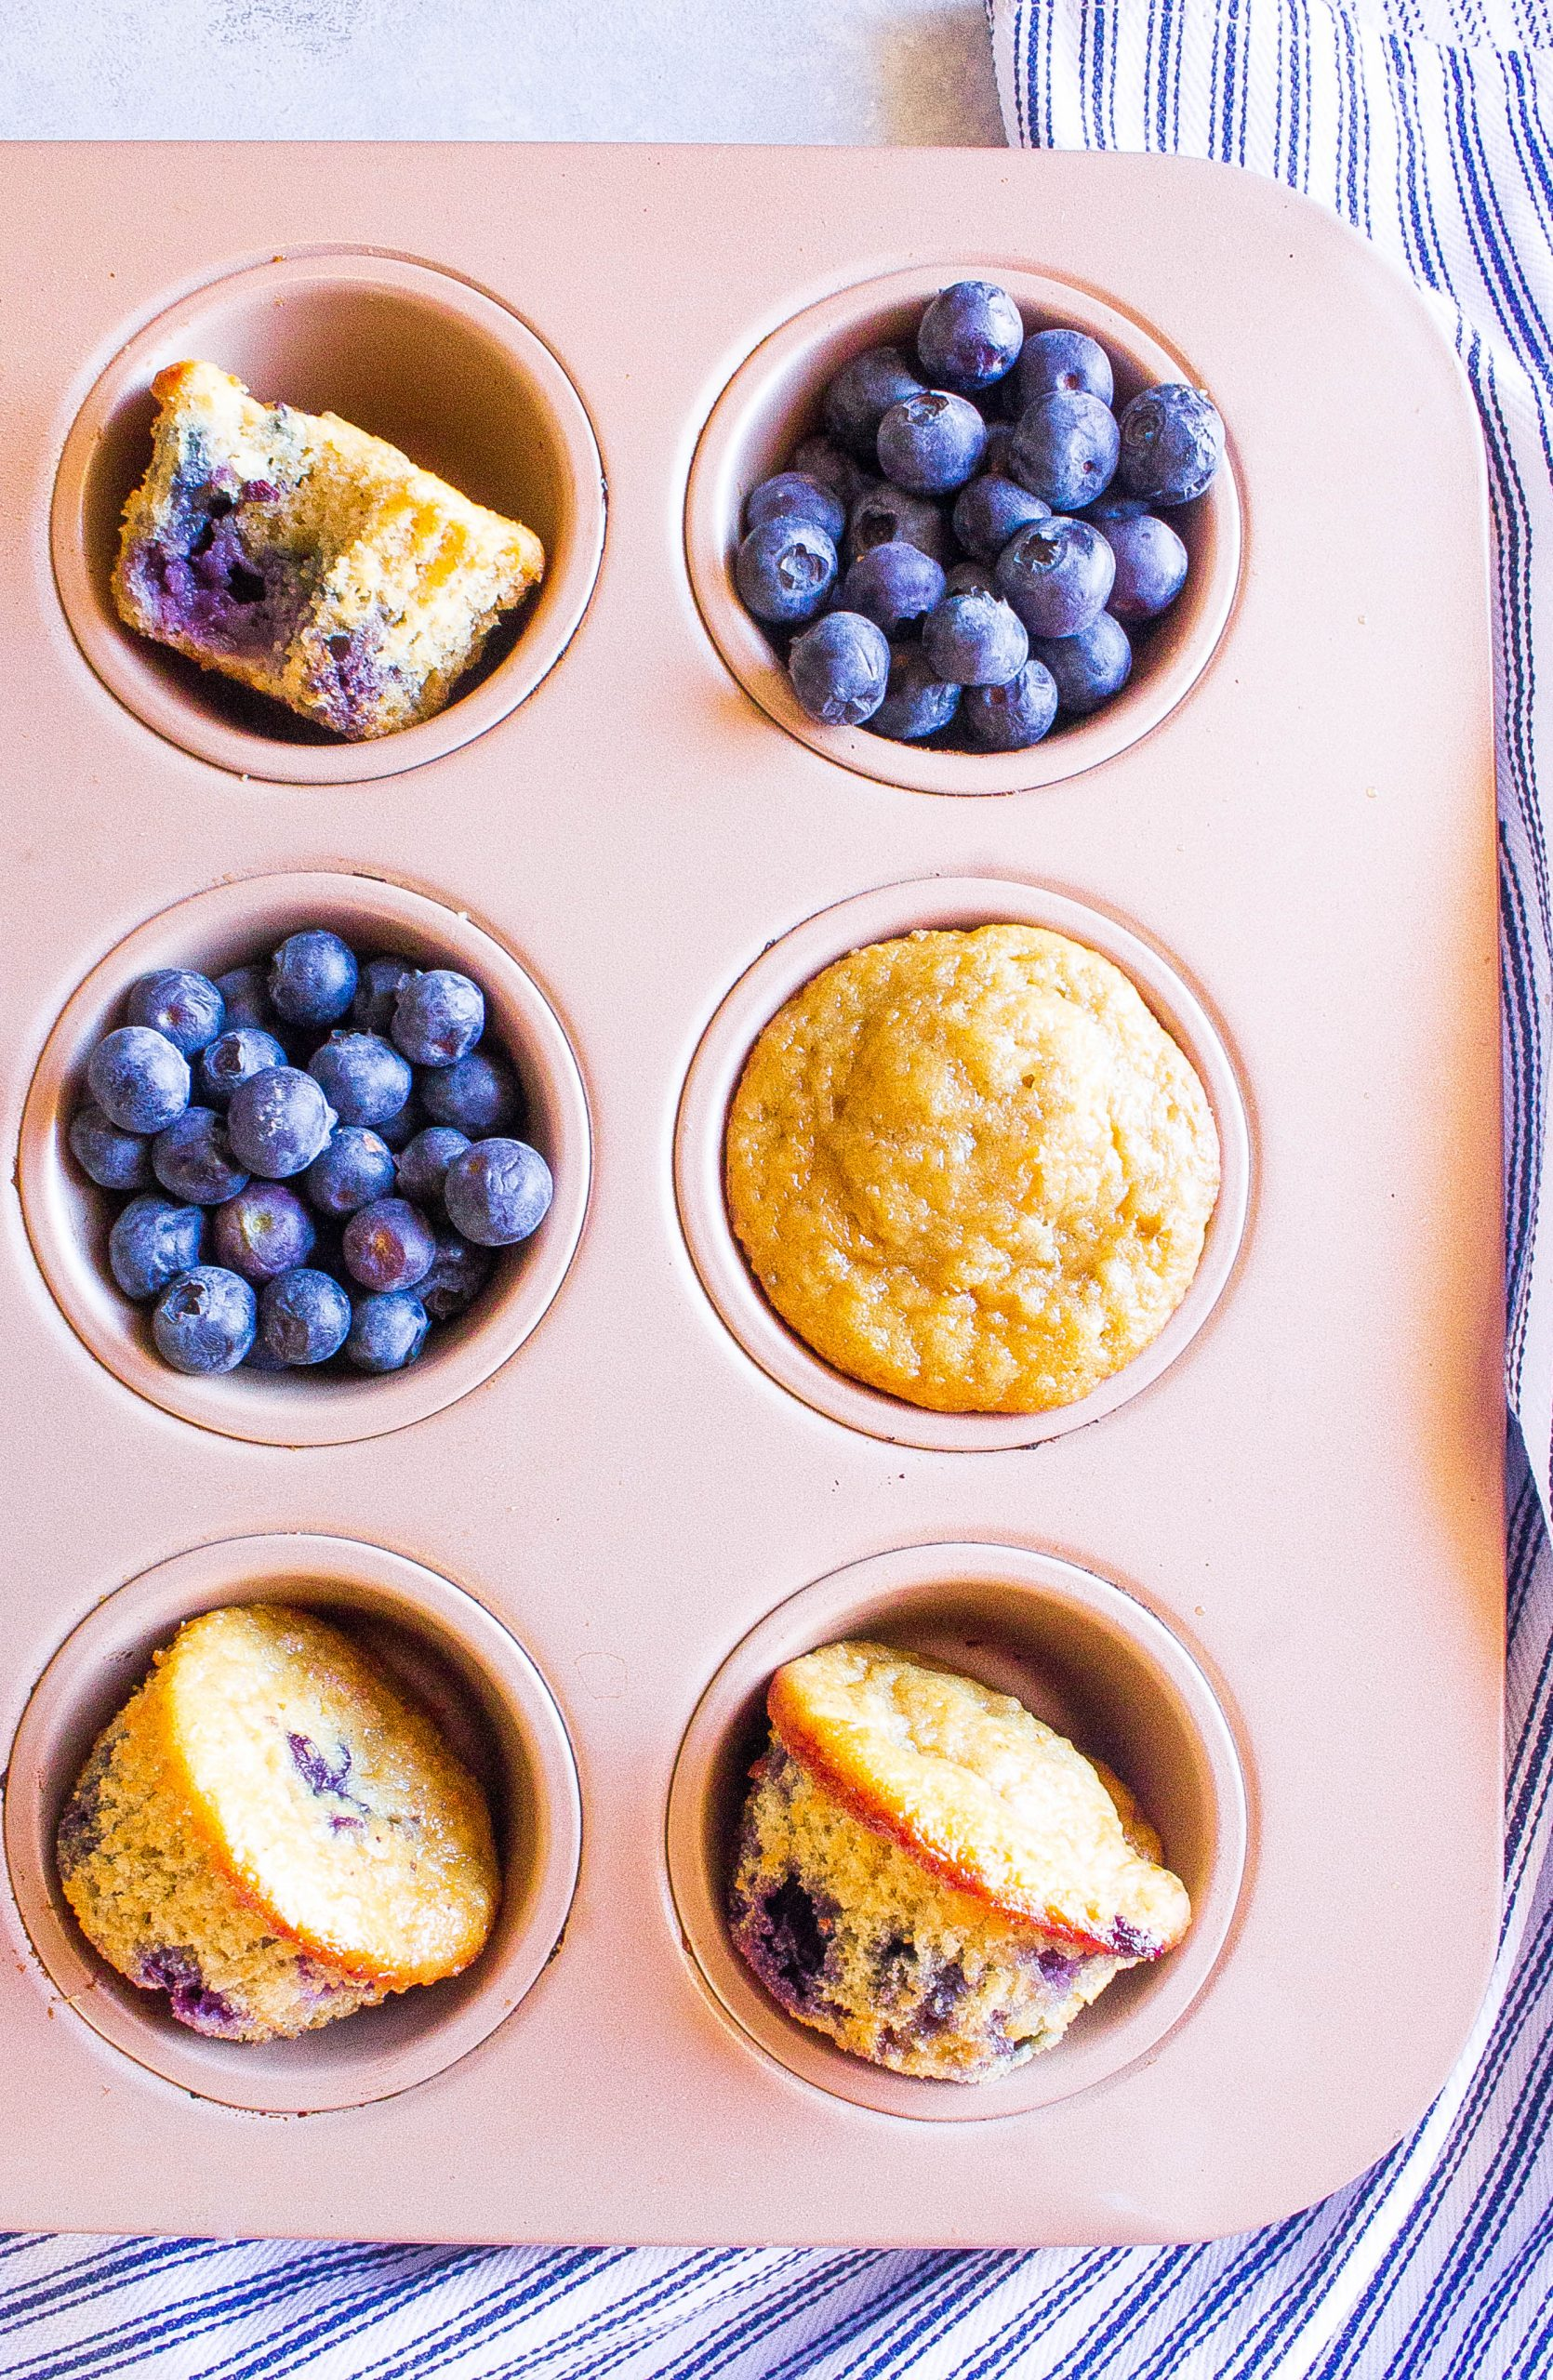 Muffins and Blueberries